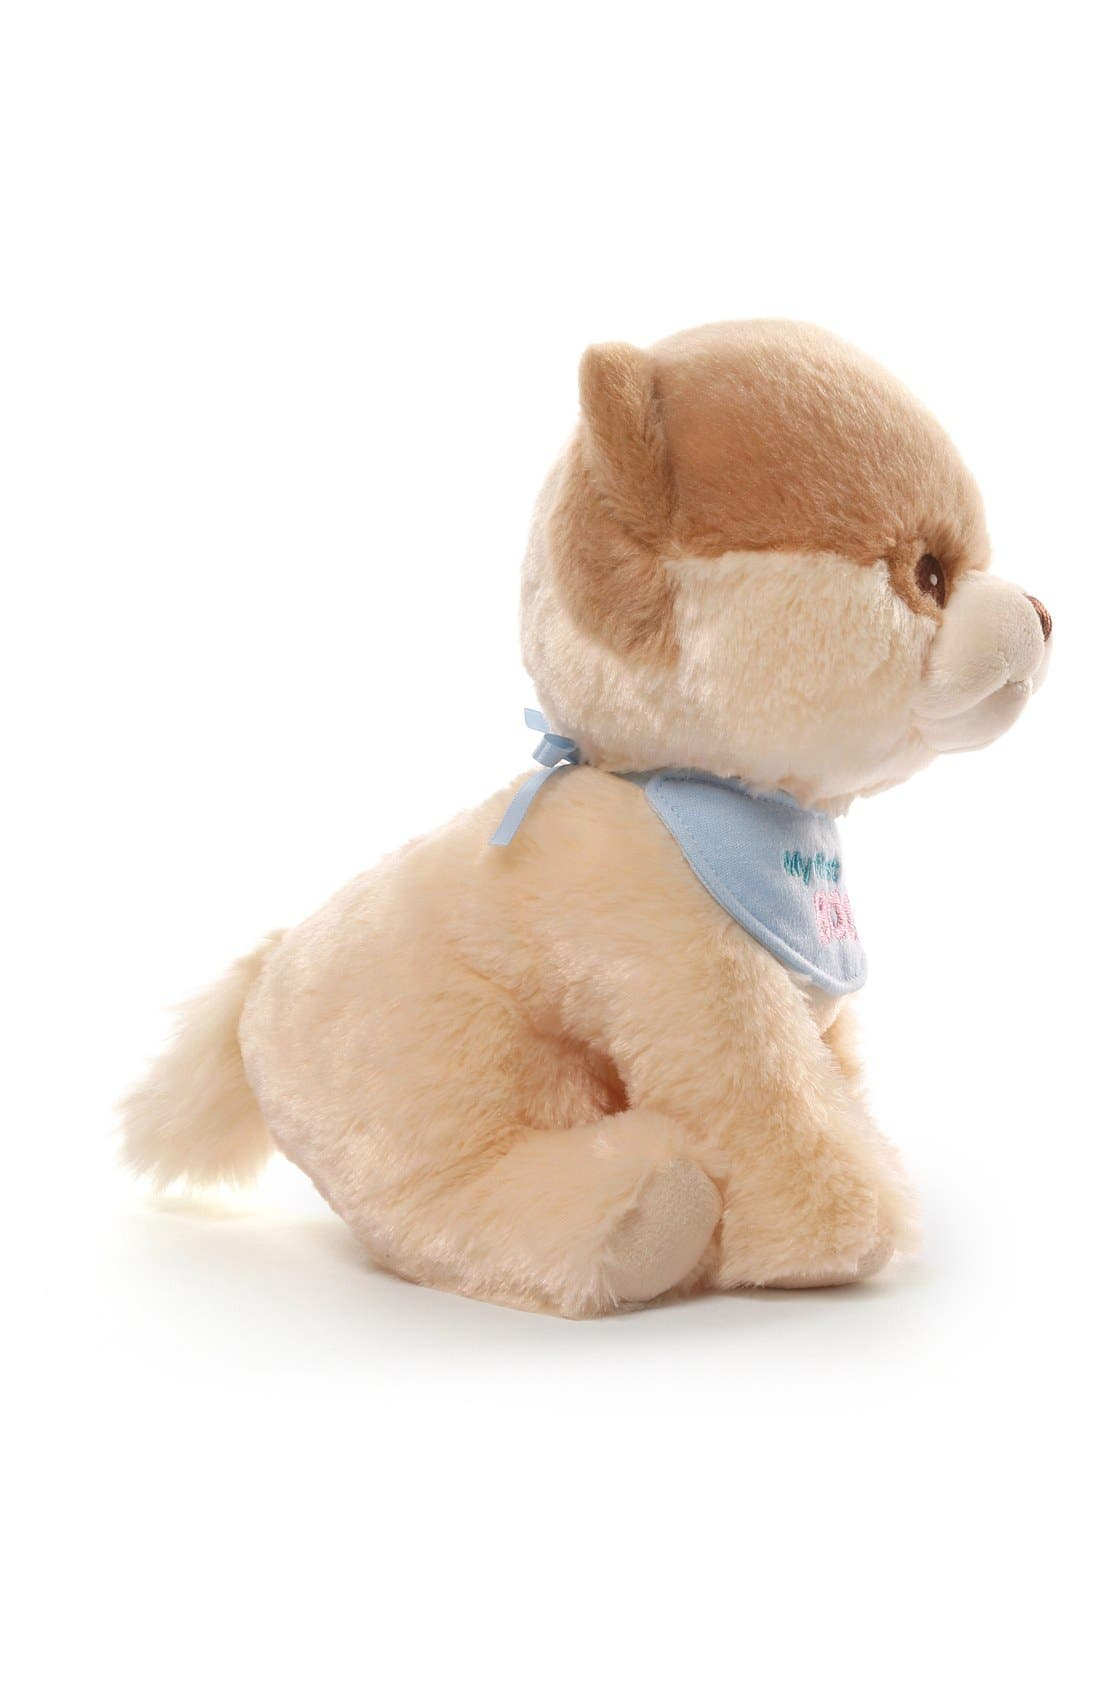 'My First Boo' Stuffed Animal,                             Alternate thumbnail 2, color,                             Beige